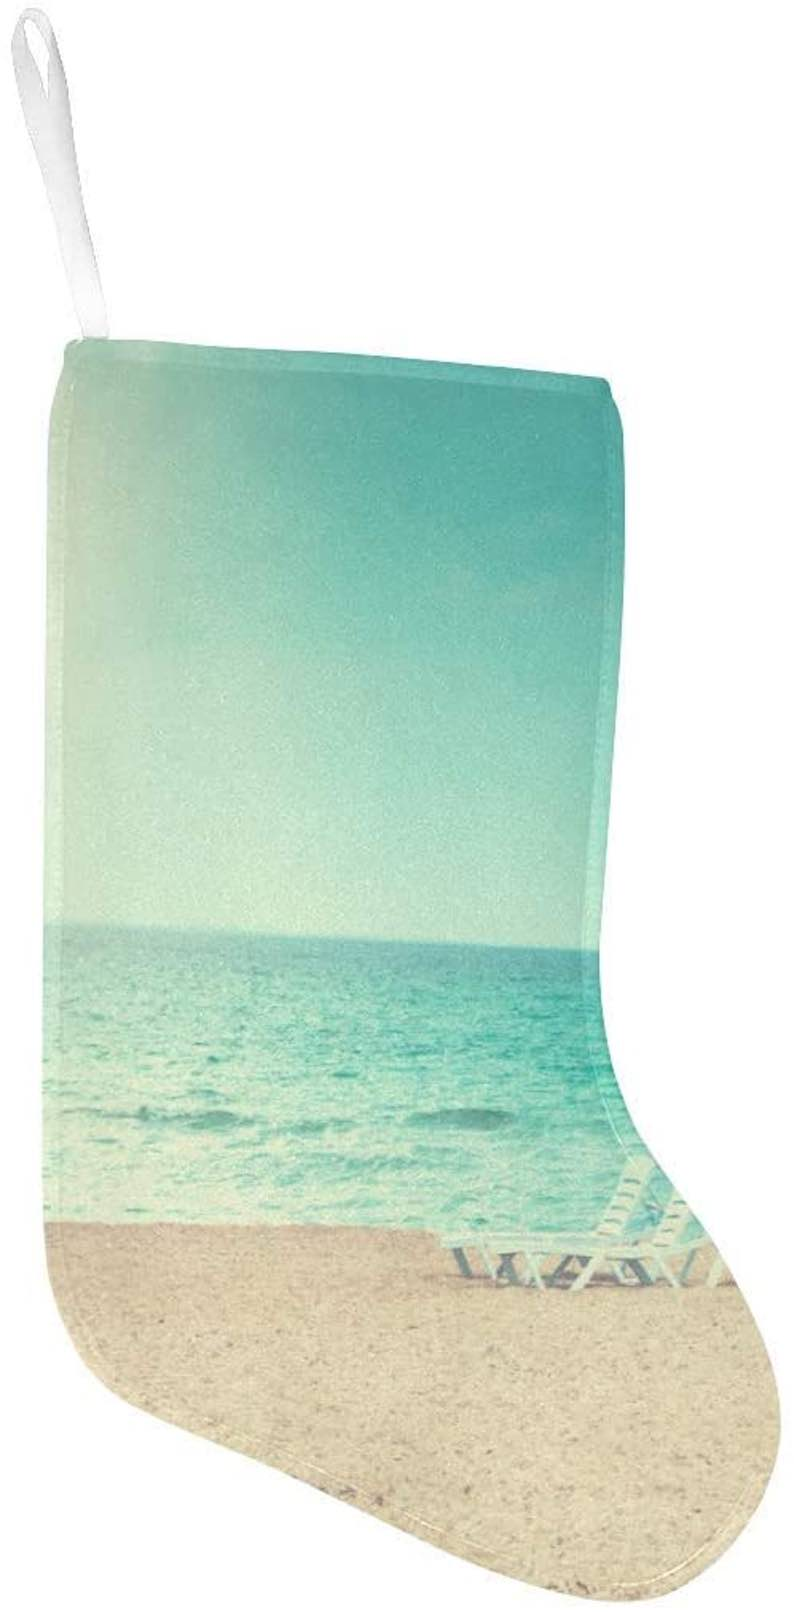 Beach Loungers Chairs Under The Bright Sun Christmas Stocking